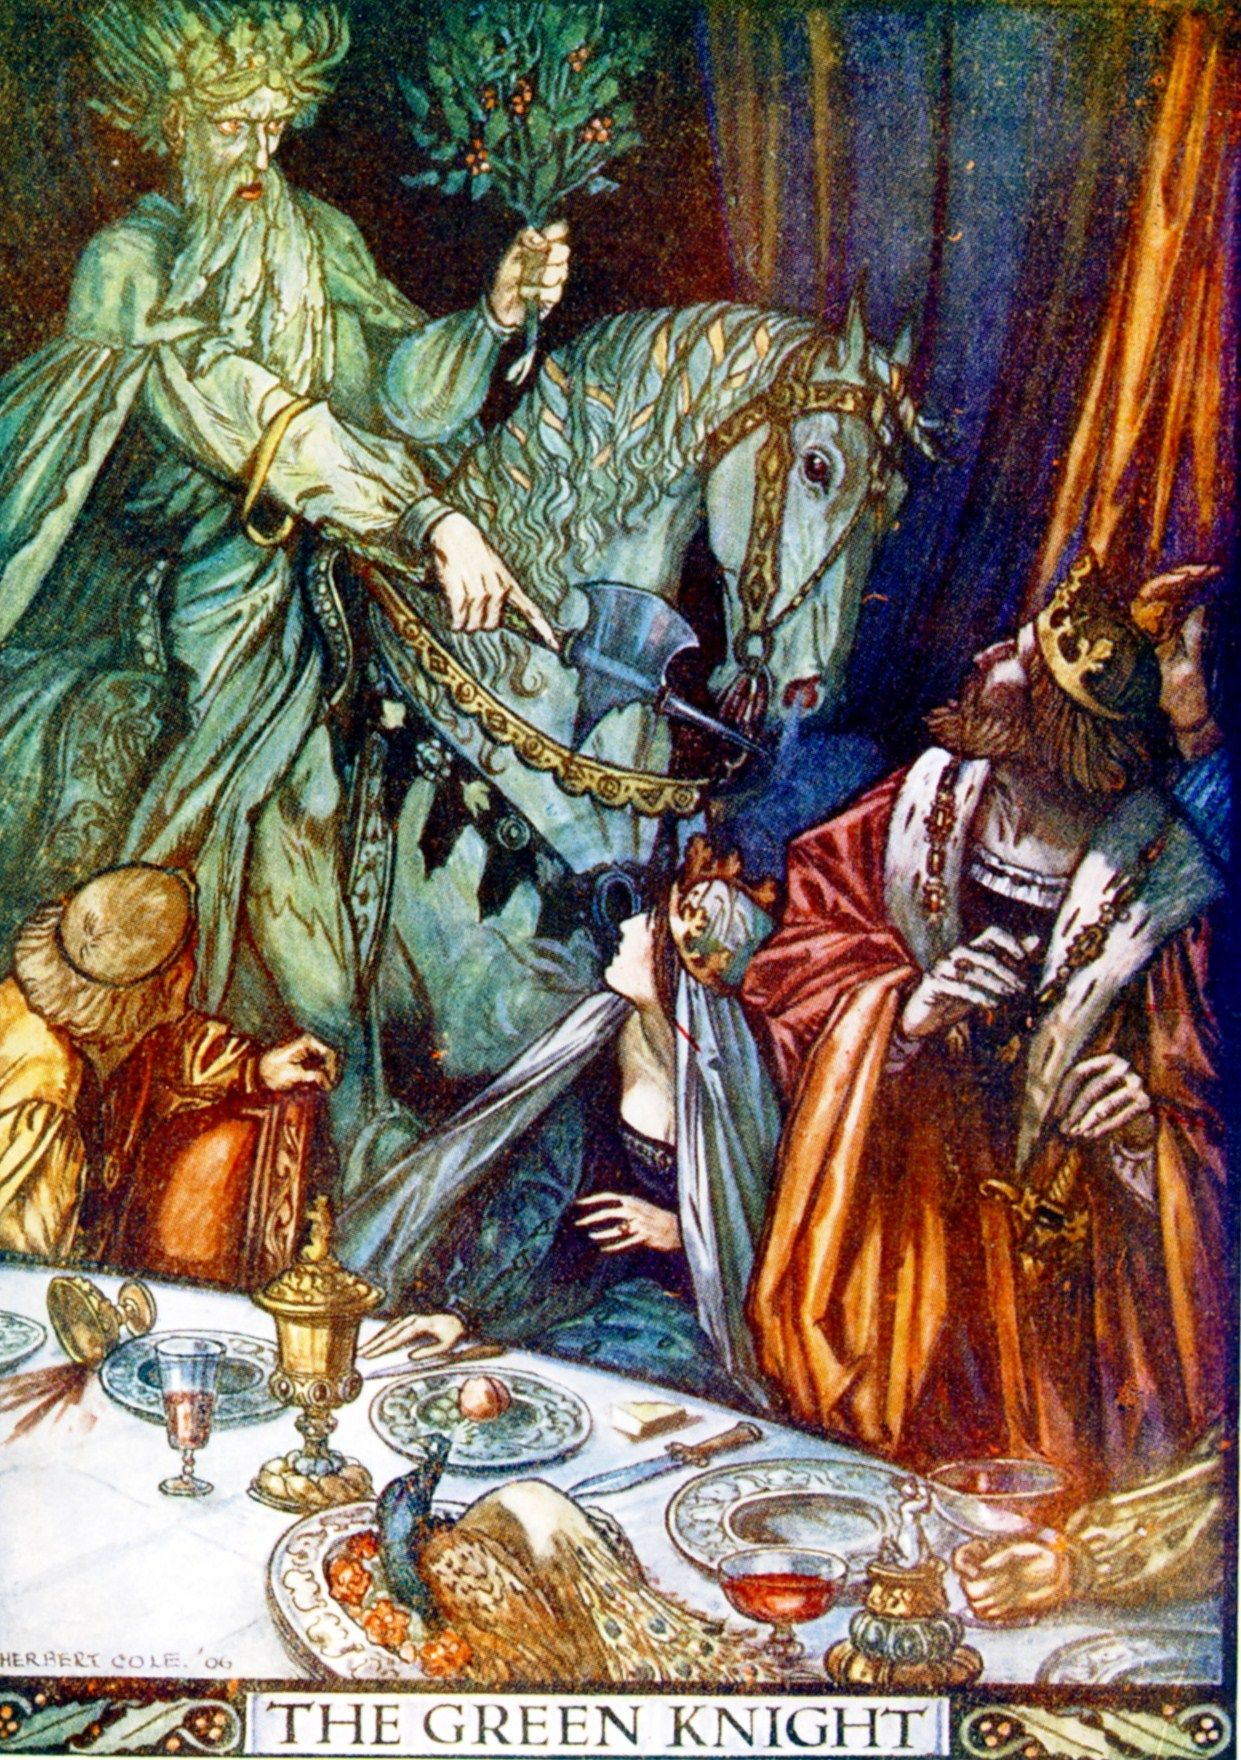 best images about tales of king arthur sir gawain on 17 best images about tales of king arthur sir gawain artworks lady and stories to read